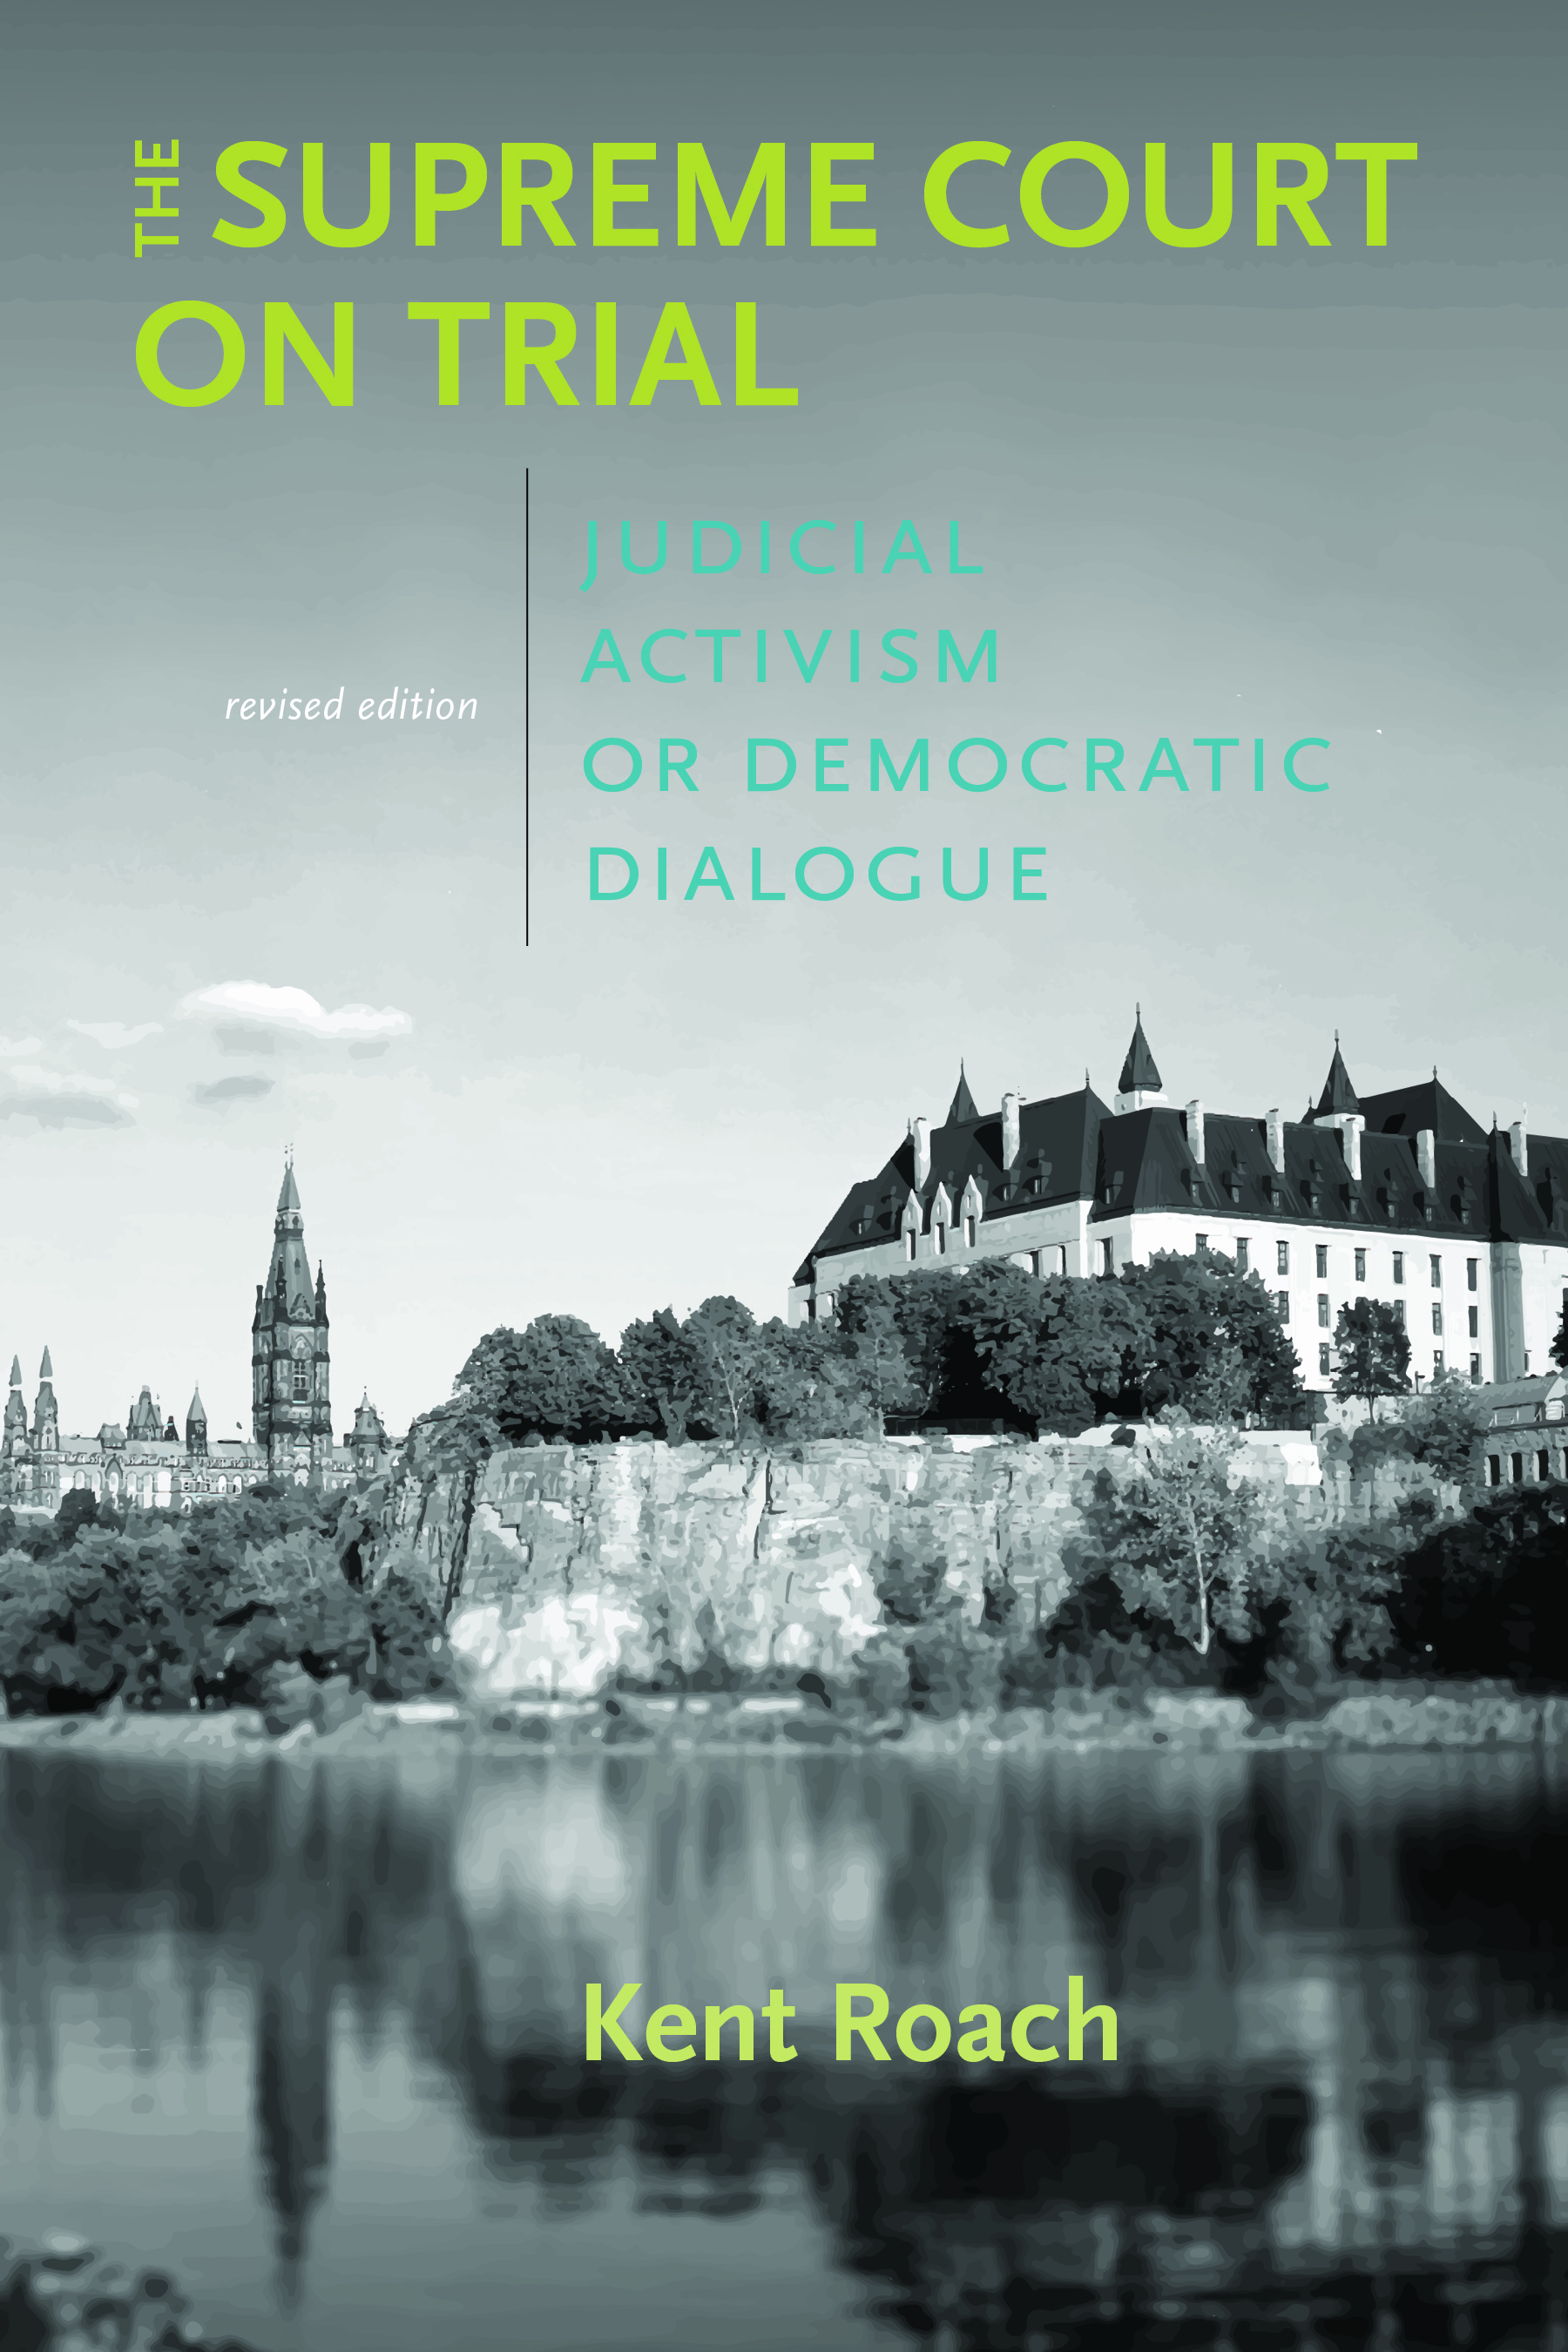 Book cover for Supreme Court on Trial by Kent Roach, showing the Supreme Court of Canada building and Parliament building and their reflections in the water.